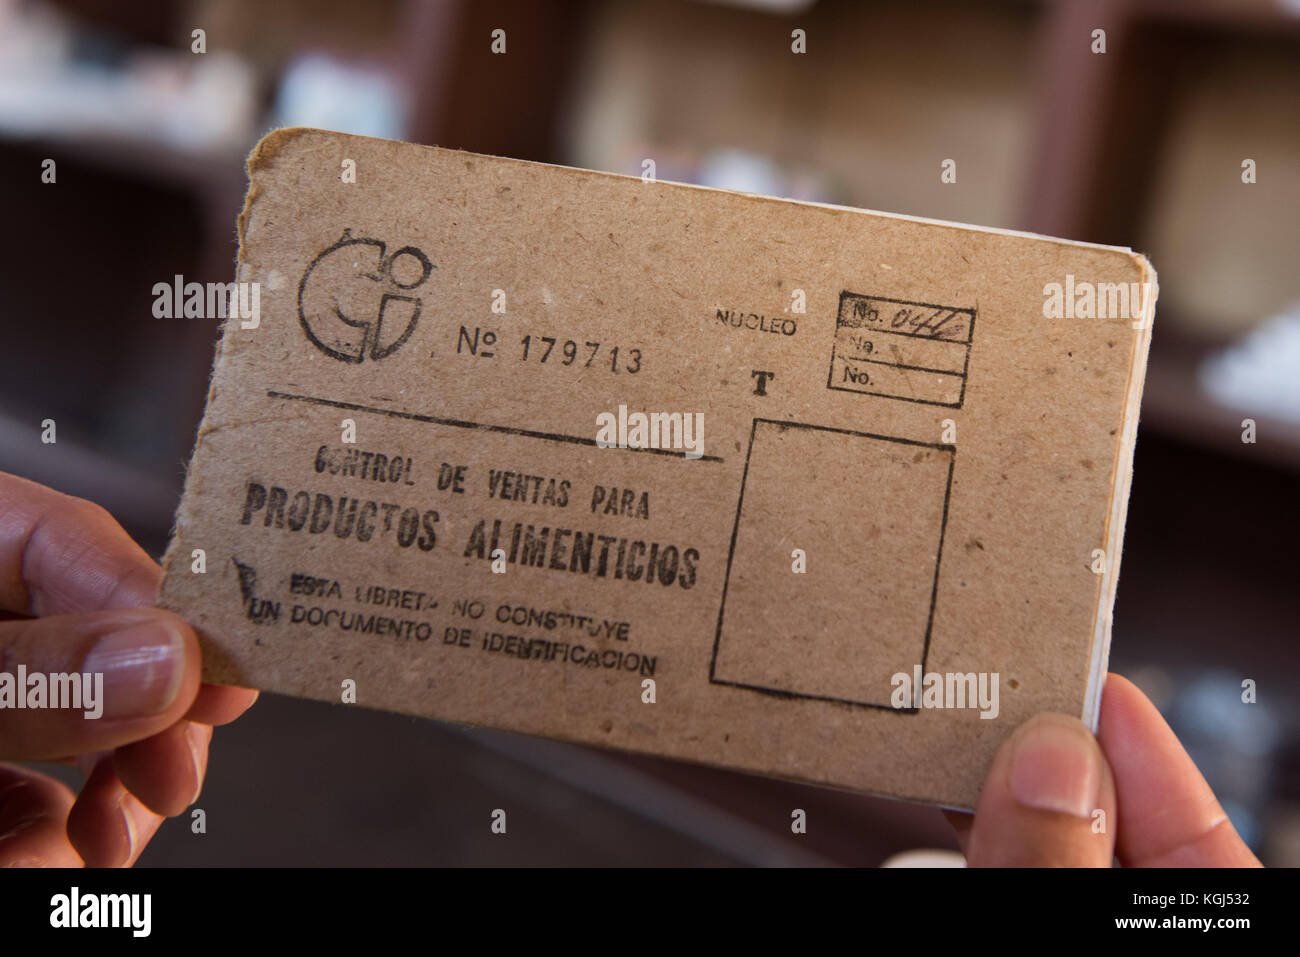 Ration booklet used by Cuban citizens in Government subsidized stores Cuba - Stock Image